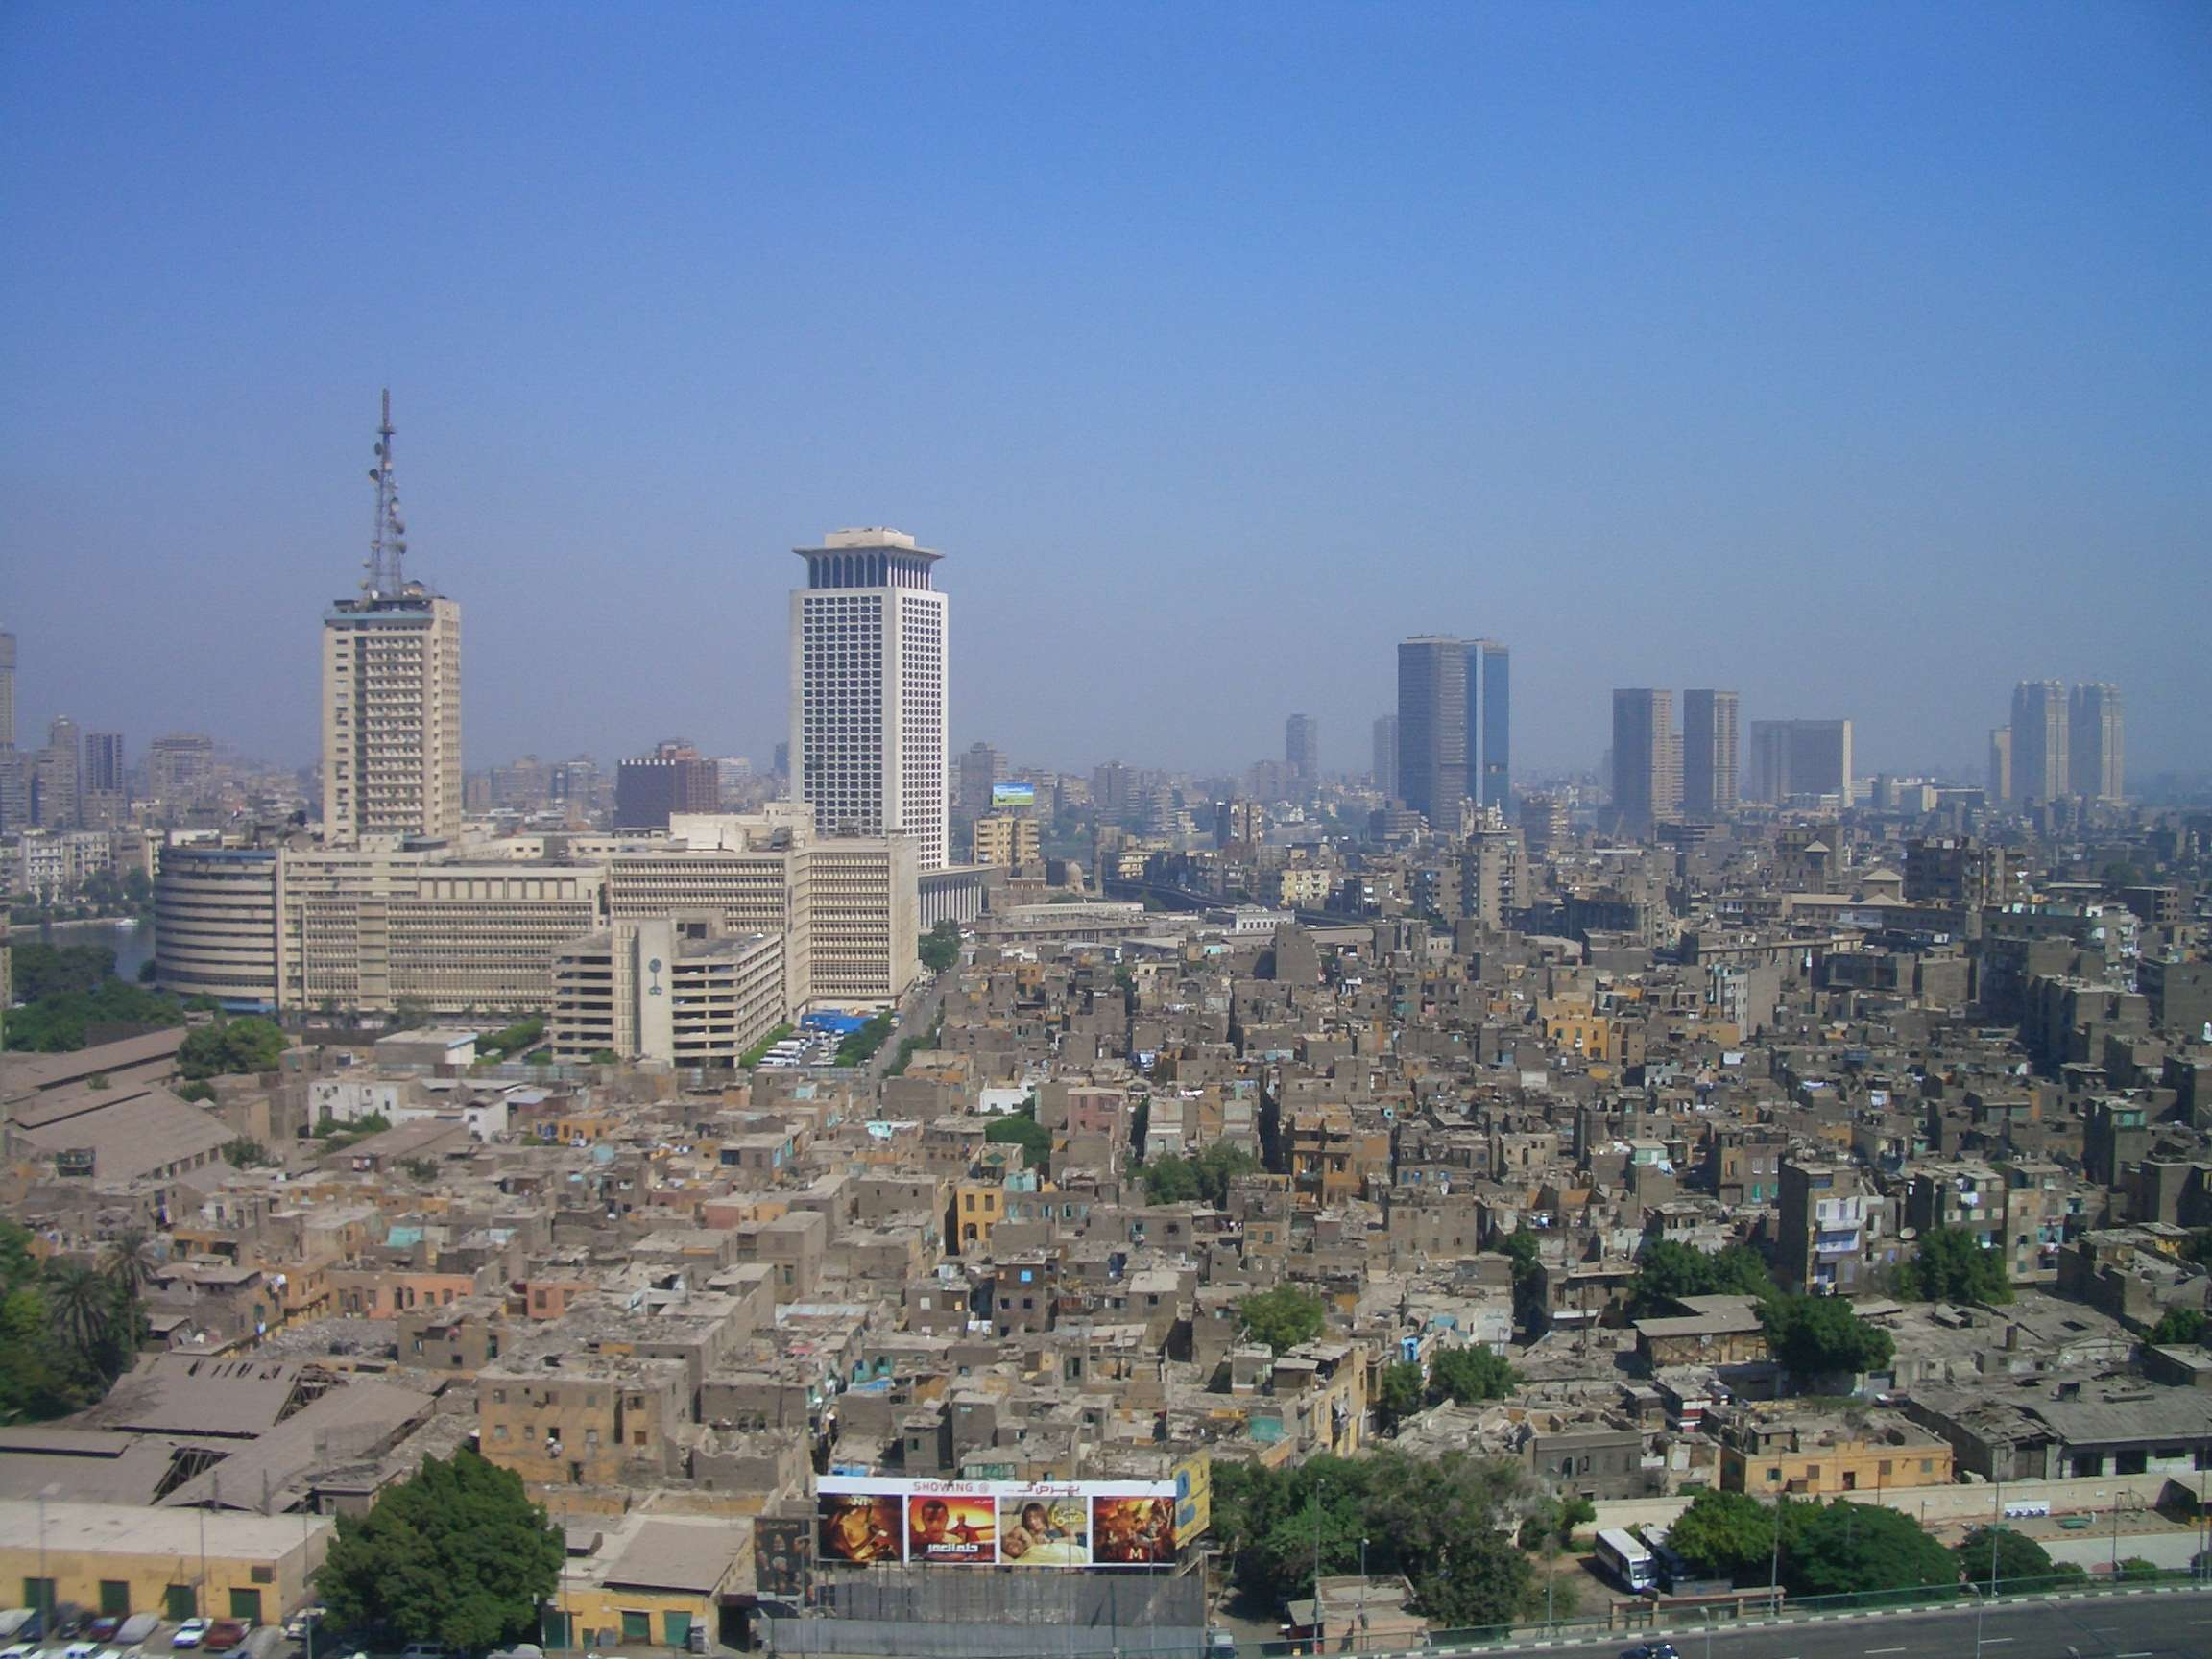 A daytime view of the Cairo skyline. (Image Credit: Stuart Geiger/Flickr)